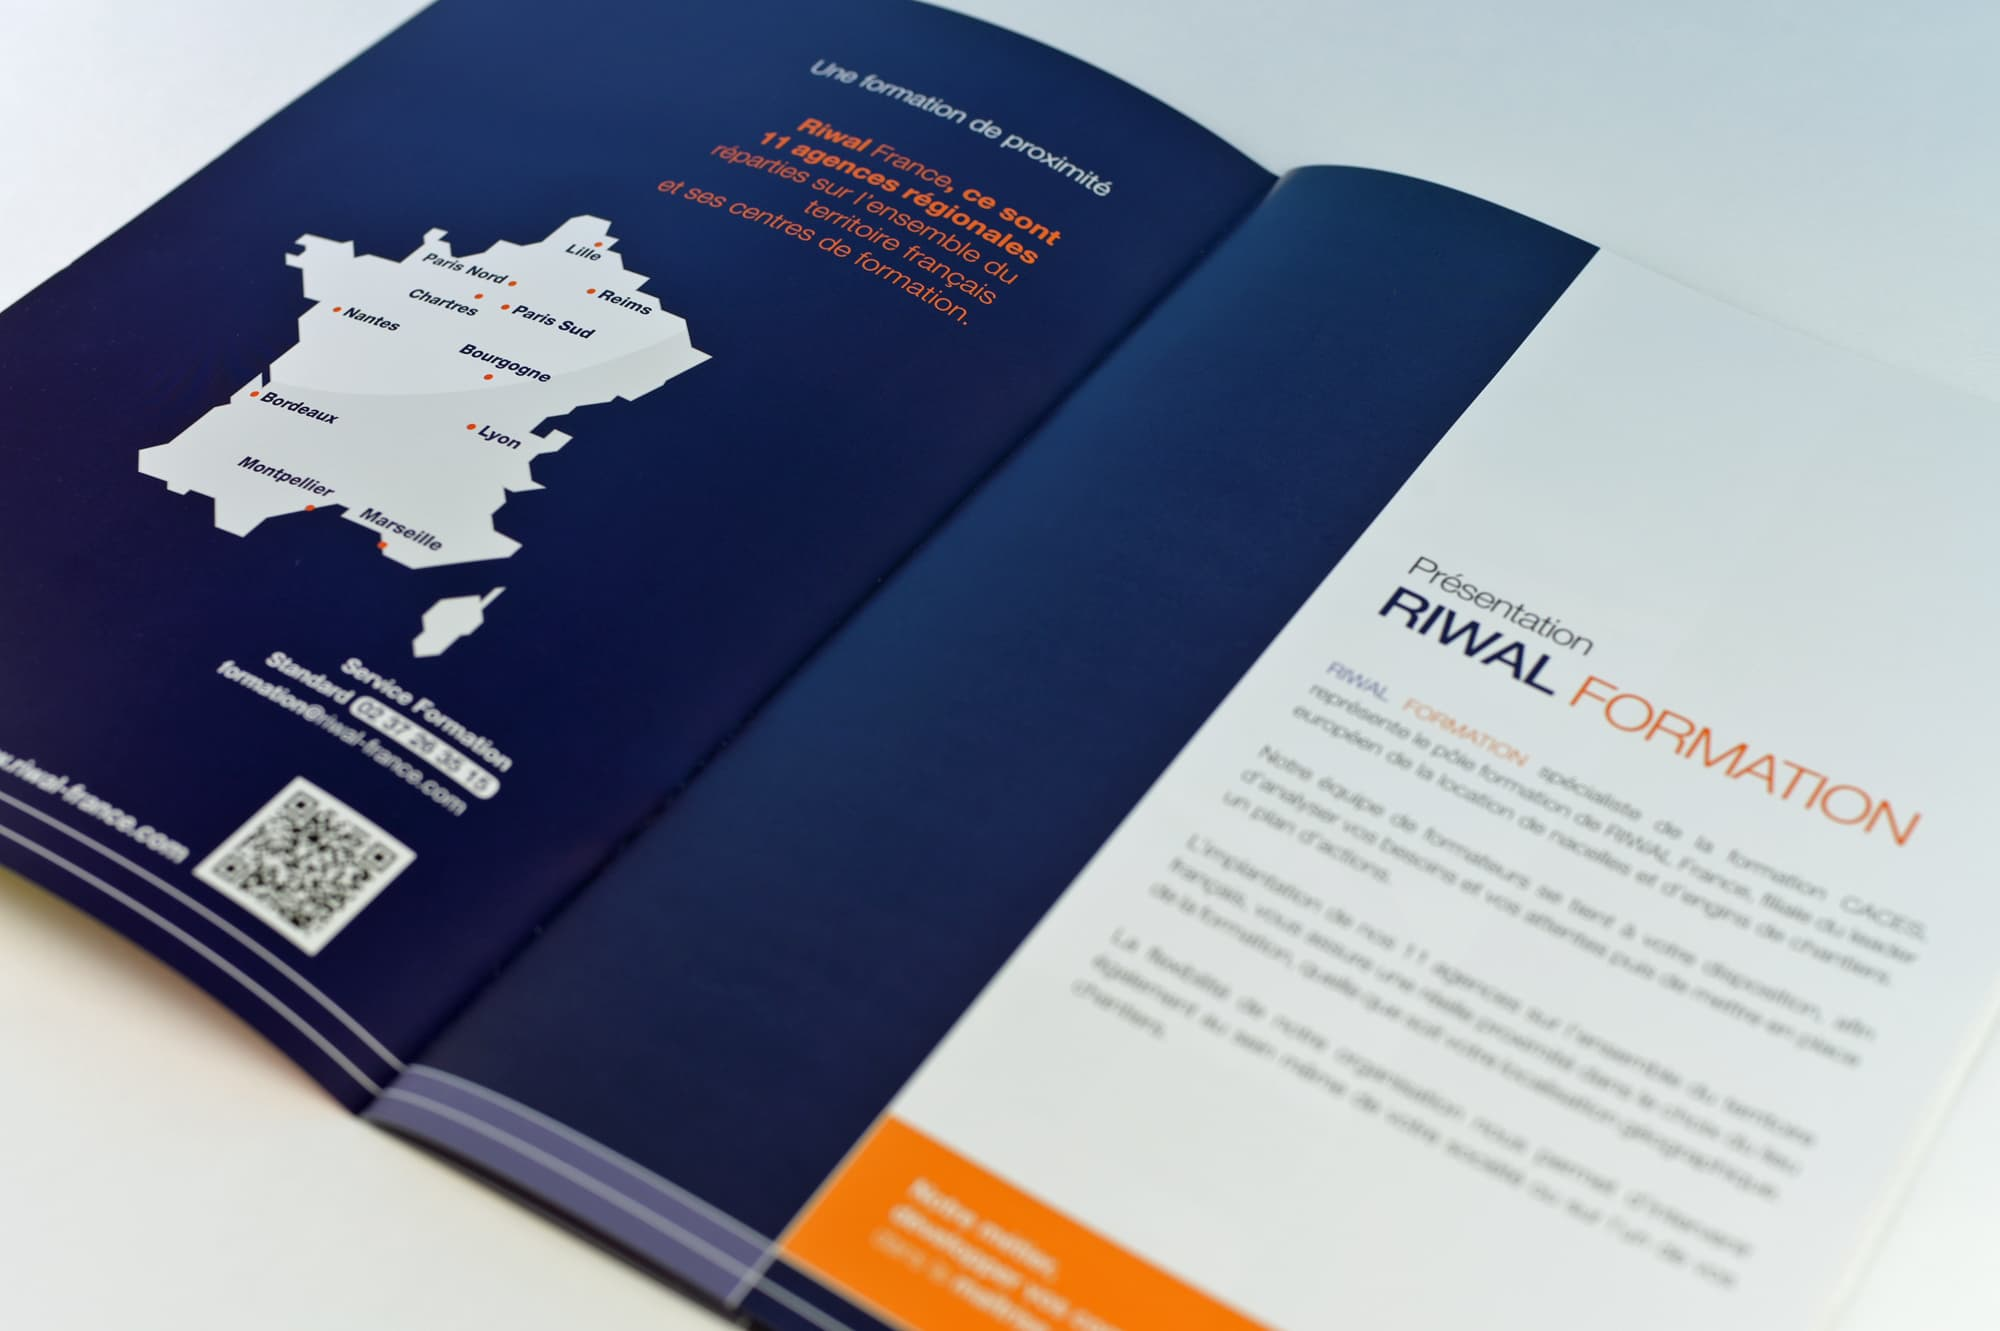 Riwal France confie à ComFX sa communication print